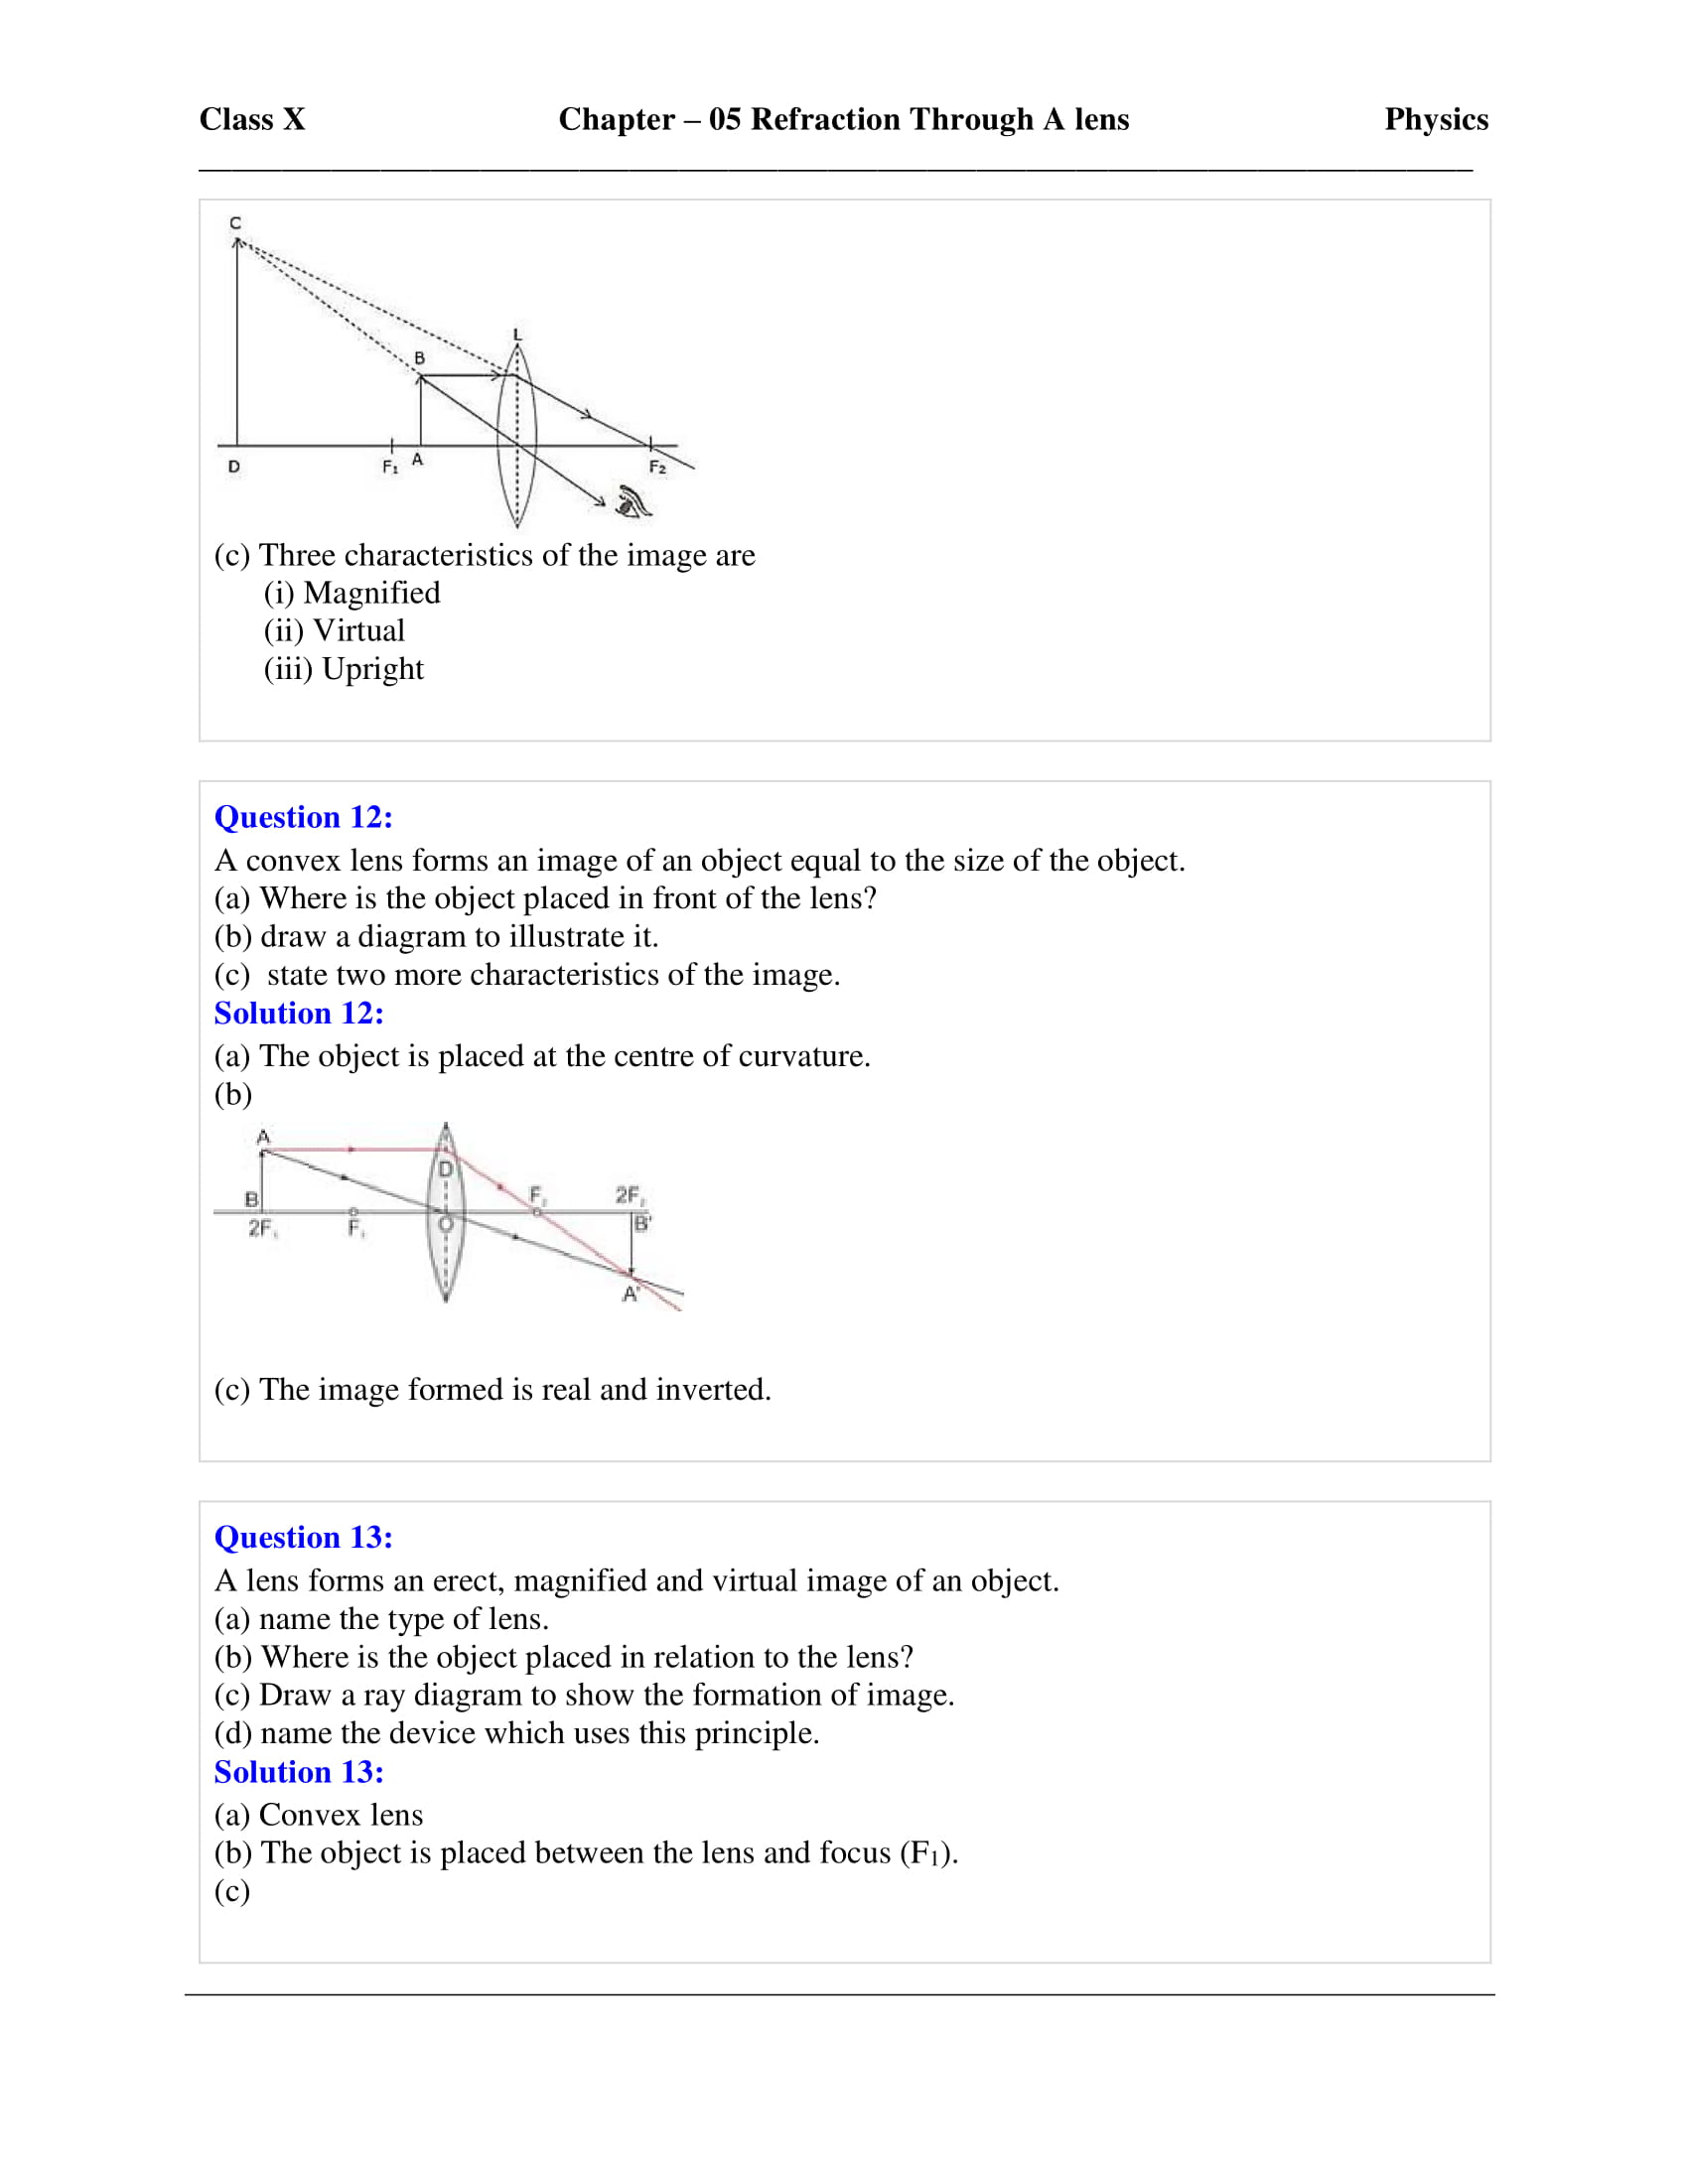 icse-selina-physics-solutions-class-10-chapter-5-refraction-through-a-lens-22